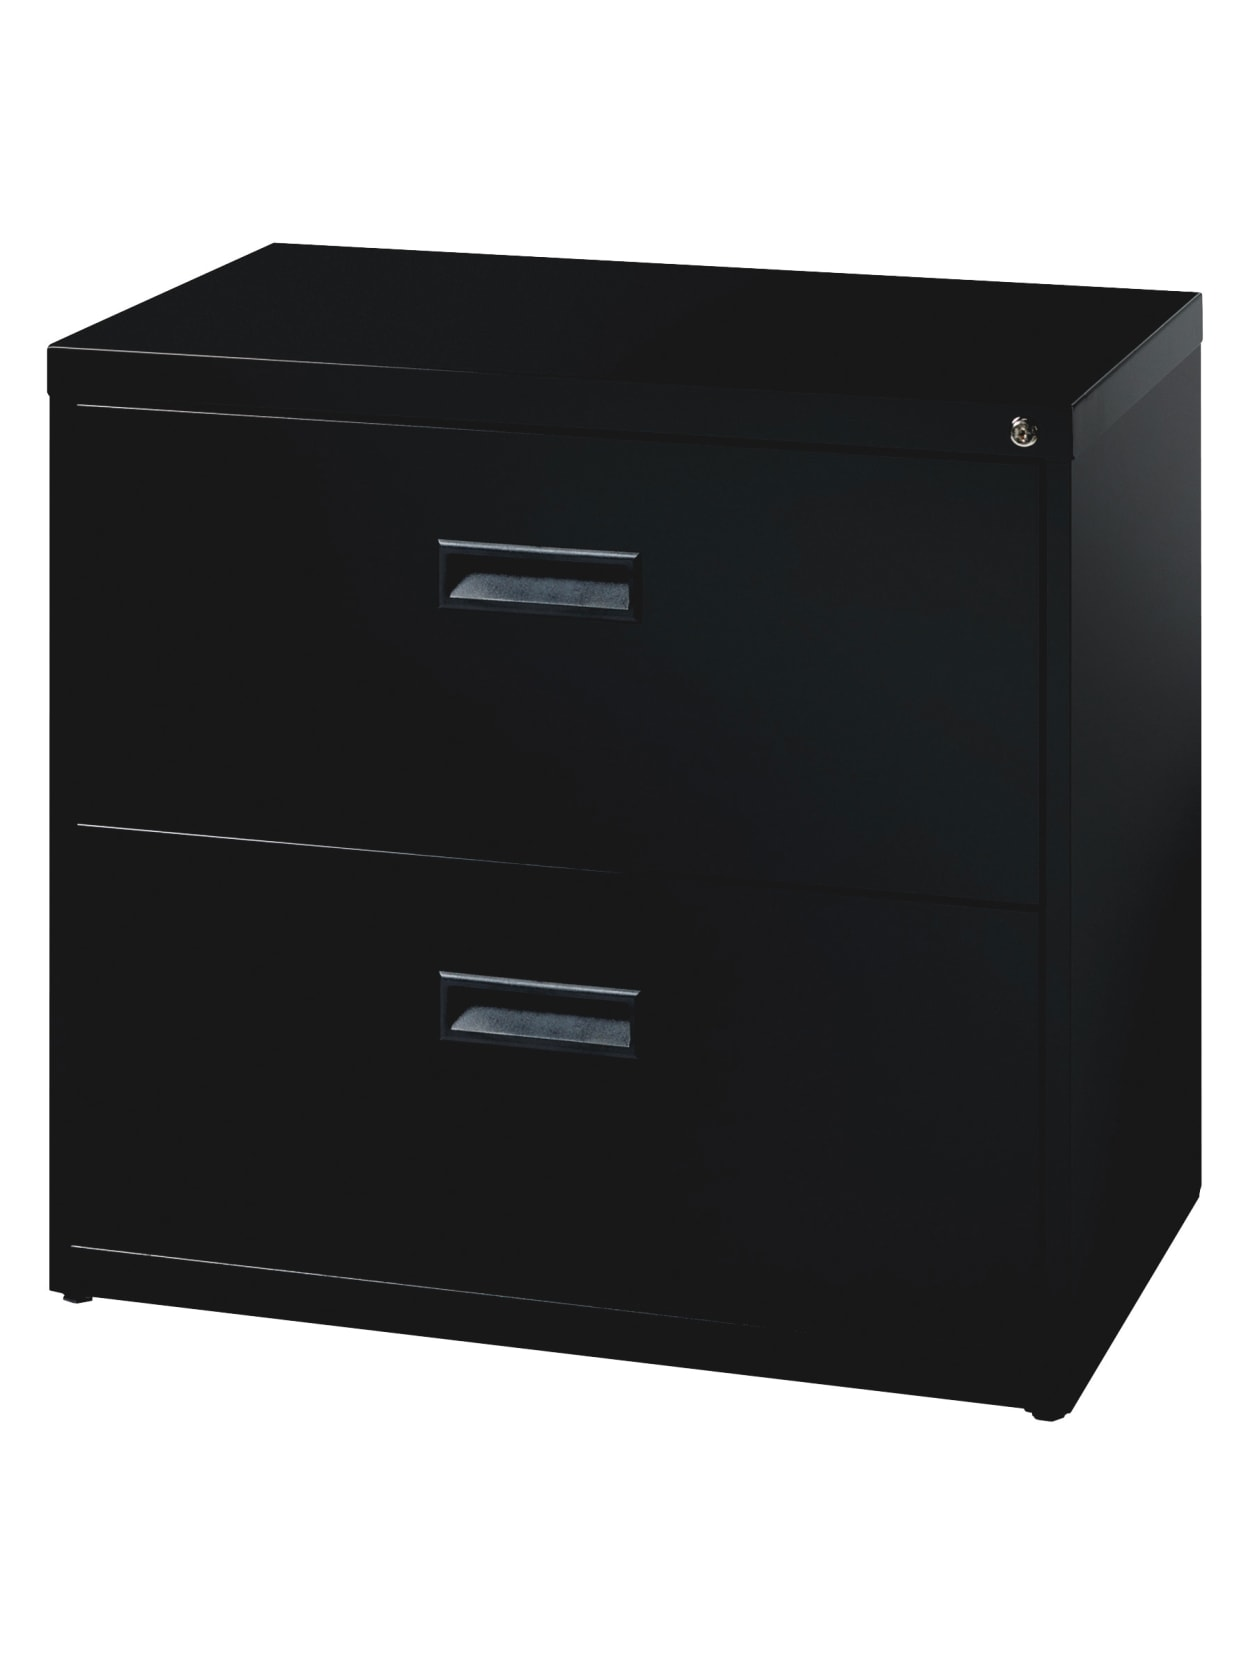 Realspace Soho 2 Drawer Cabinet Black Office Depot